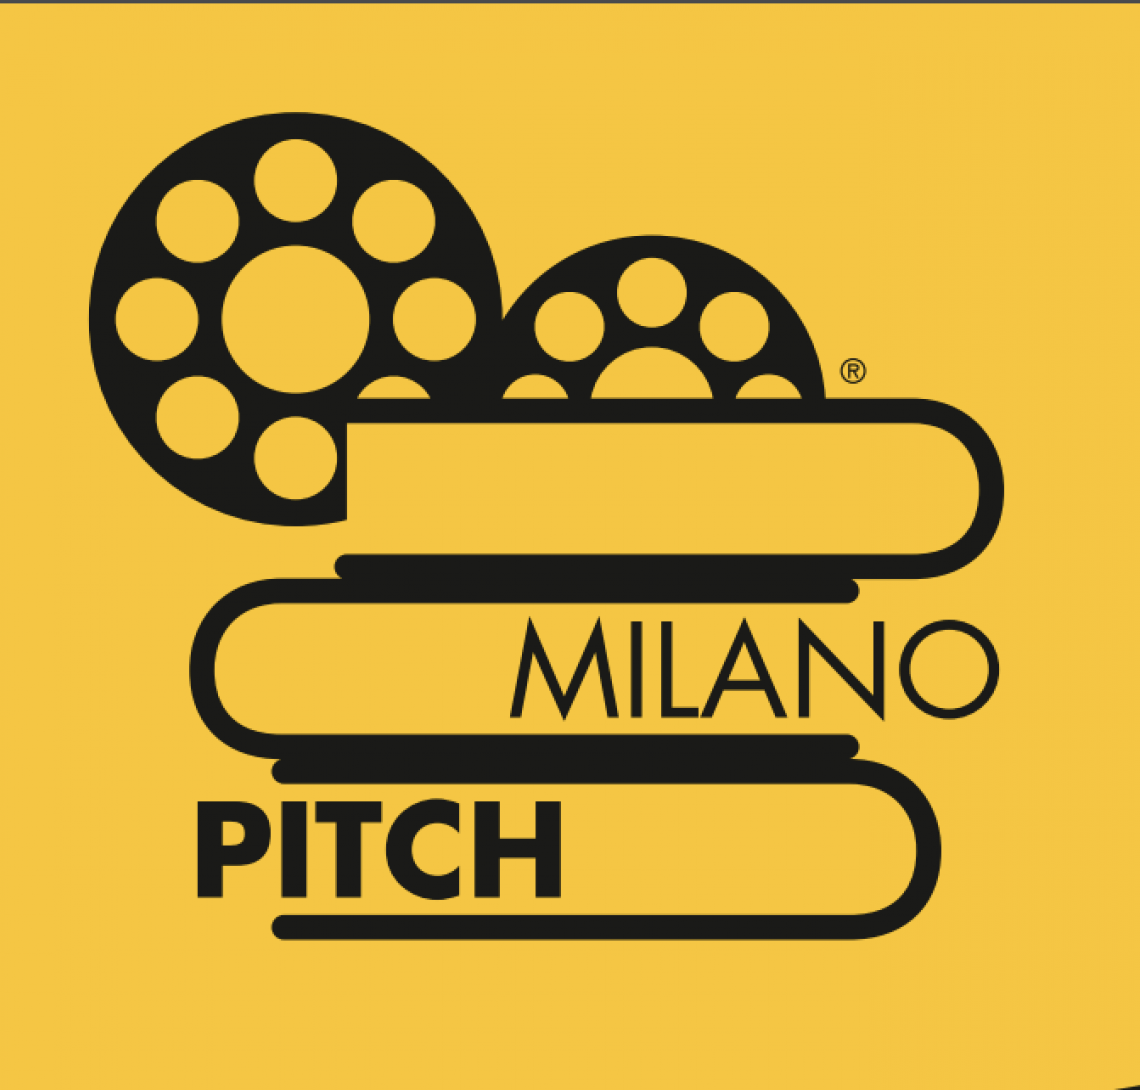 Milano pitch